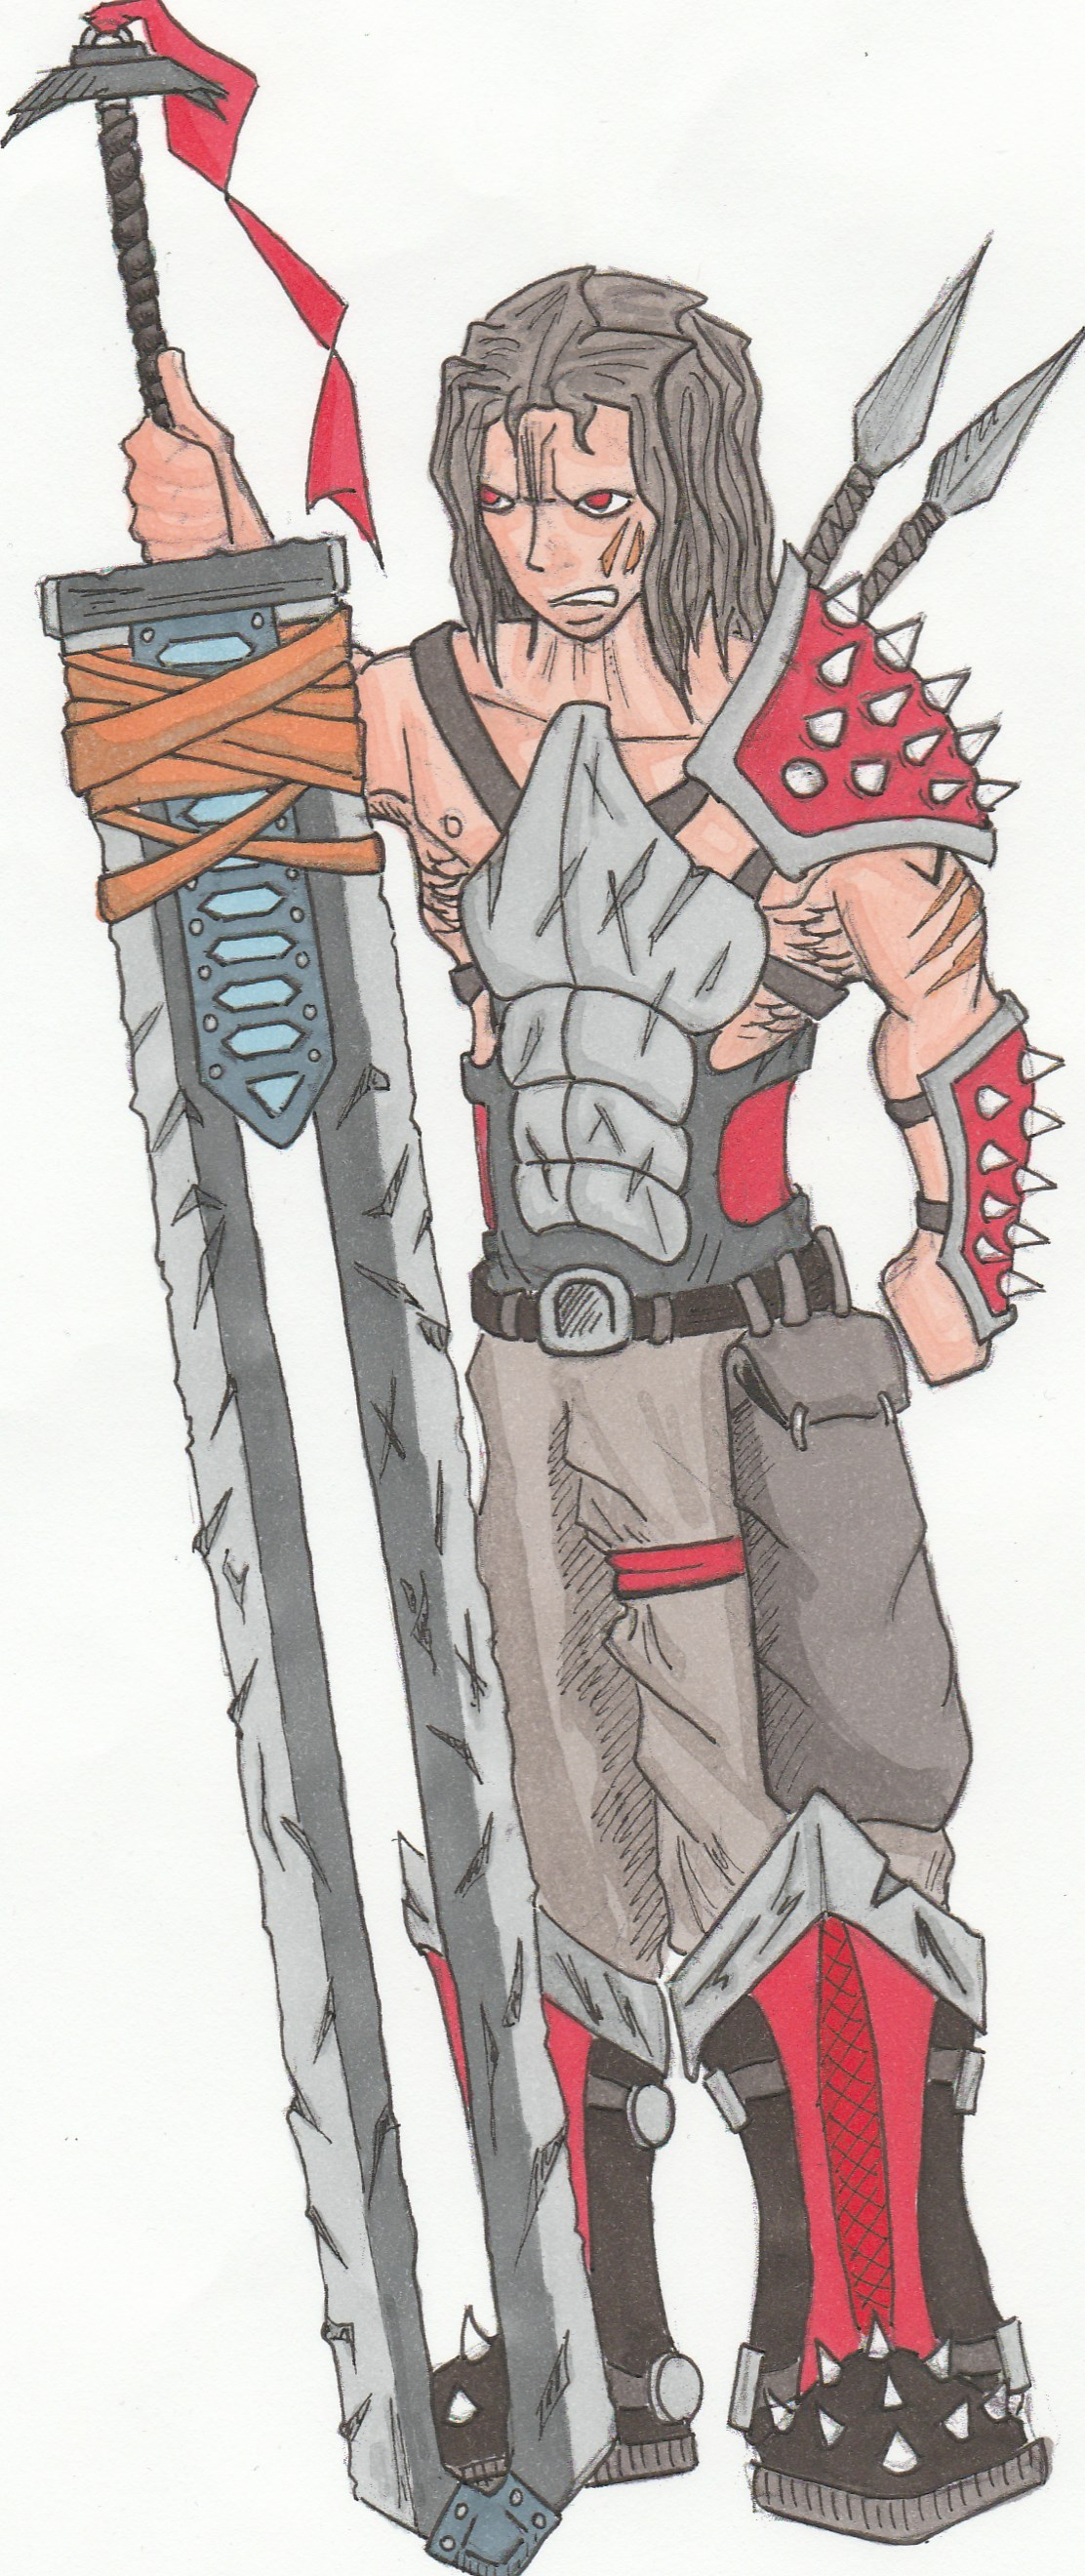 Barbarian_v2_Color.jpg